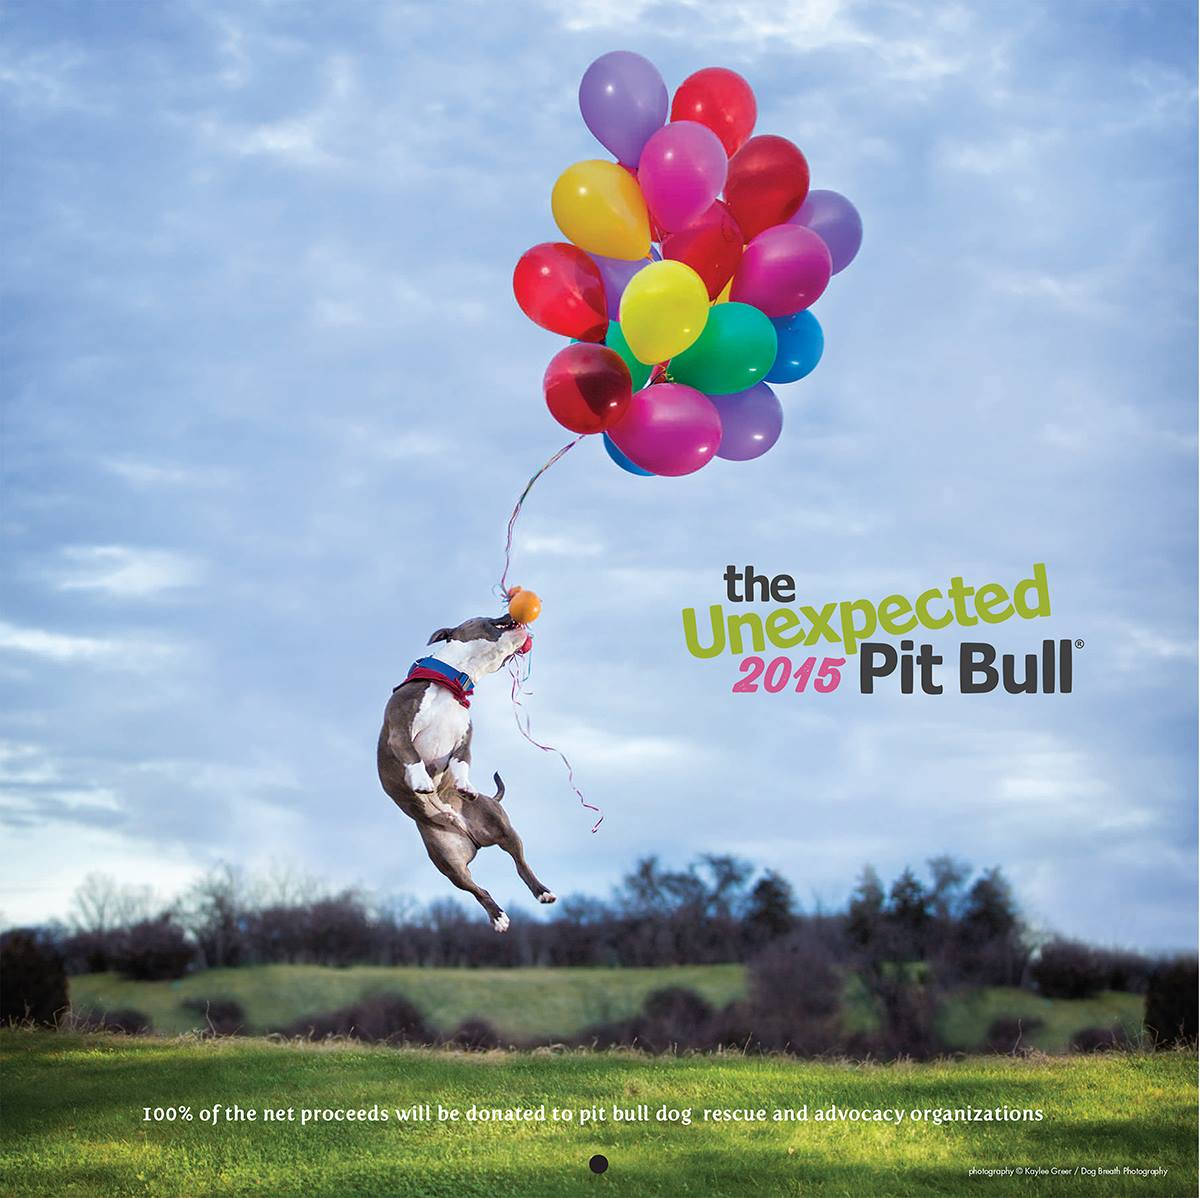 Cover Image for The Unexpected Pit Bull's 2015 calendar